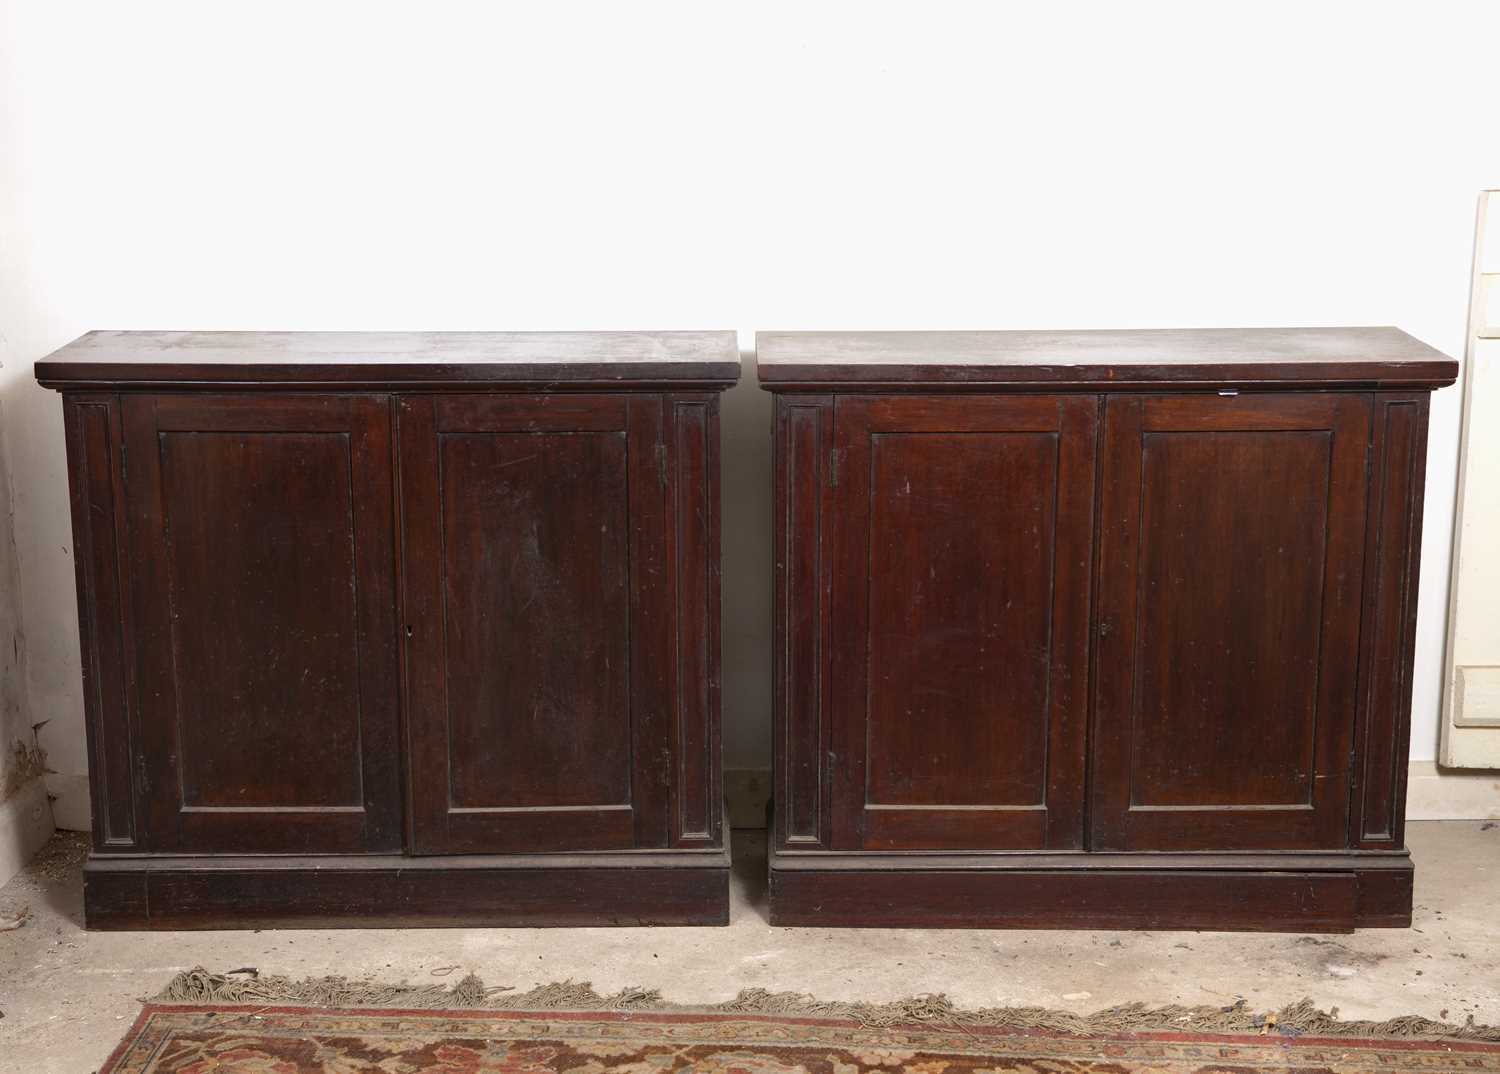 A pair of 19th century mahogany cupboards, each with a pair of panelled doors enclosing shelving, on